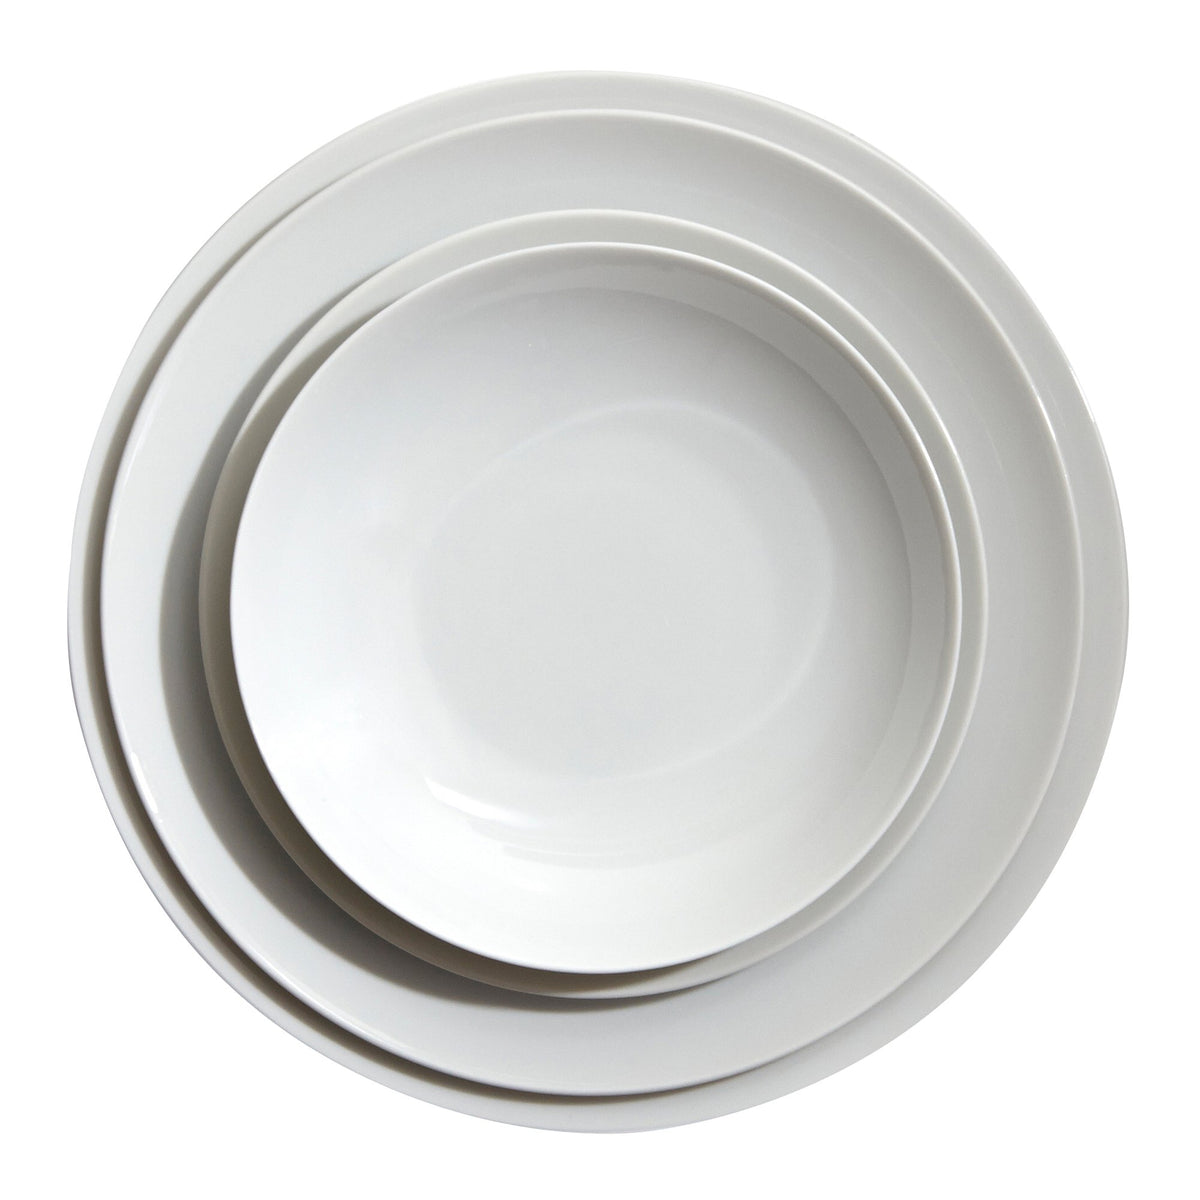 Medaillon White Porcelain Dinner Plate